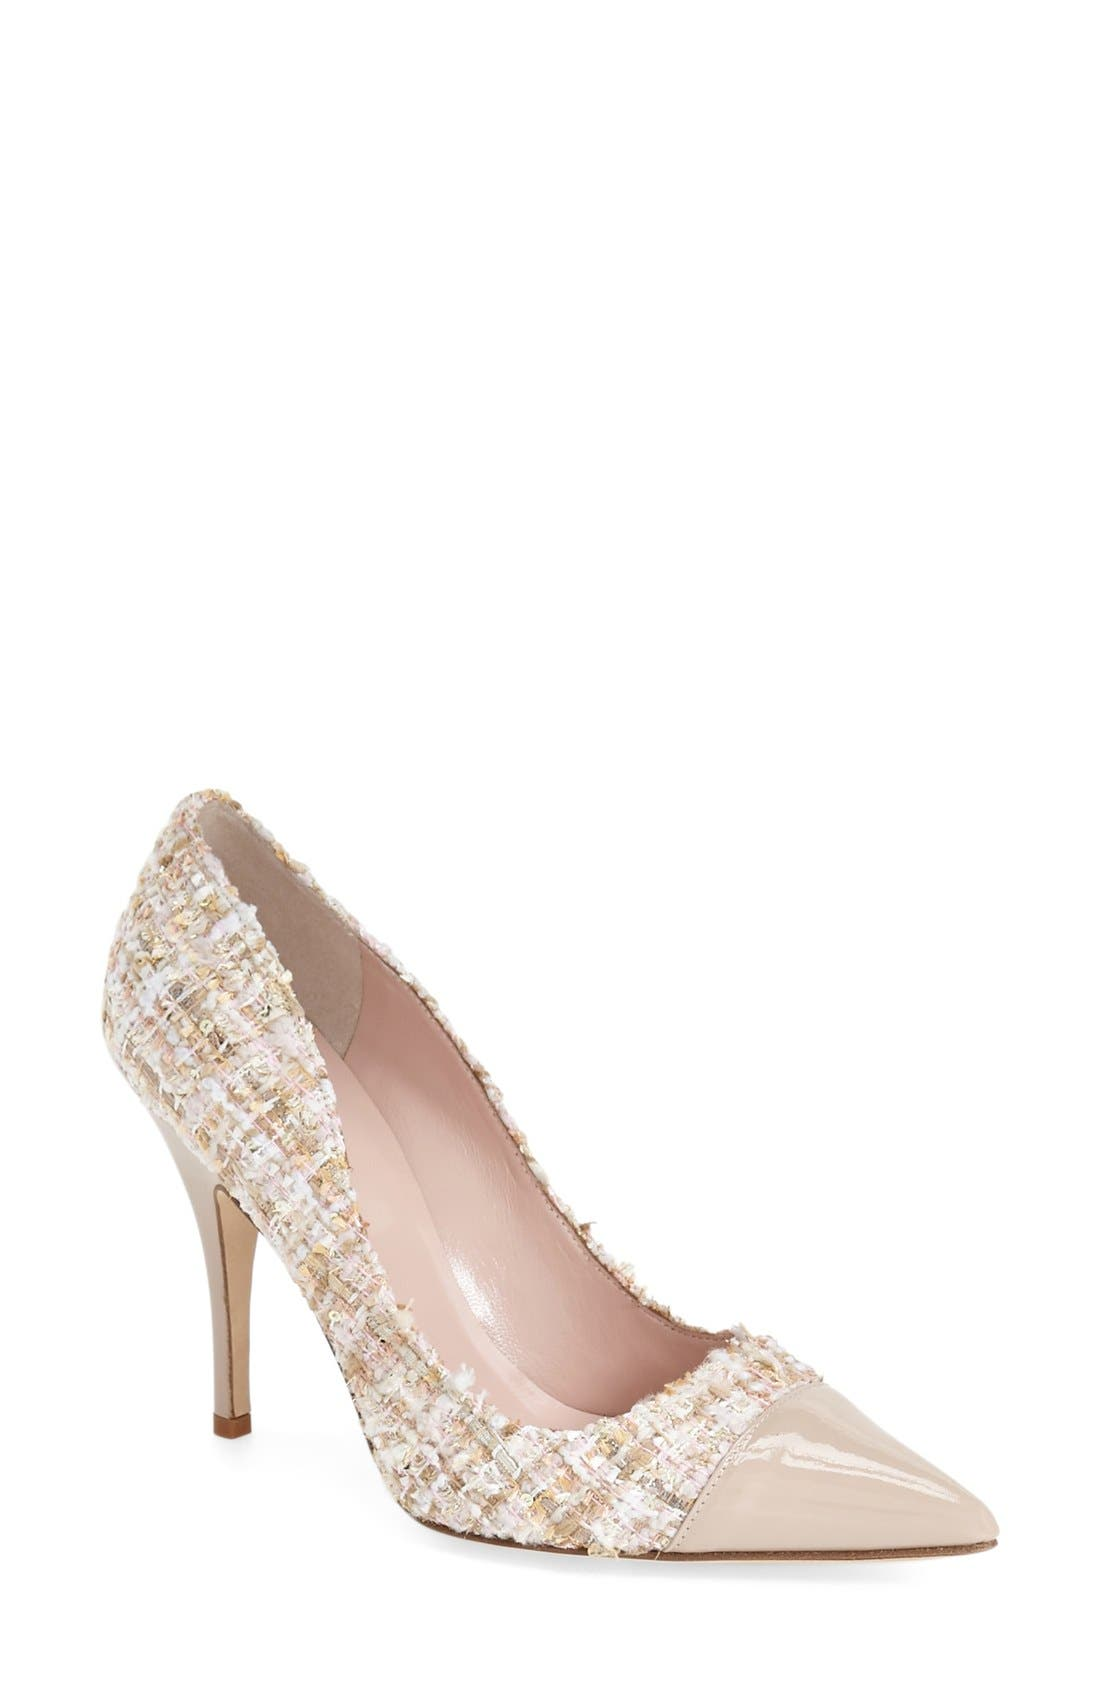 Main Image - kate spade new york 'lacy' pointy toe pump (Women)